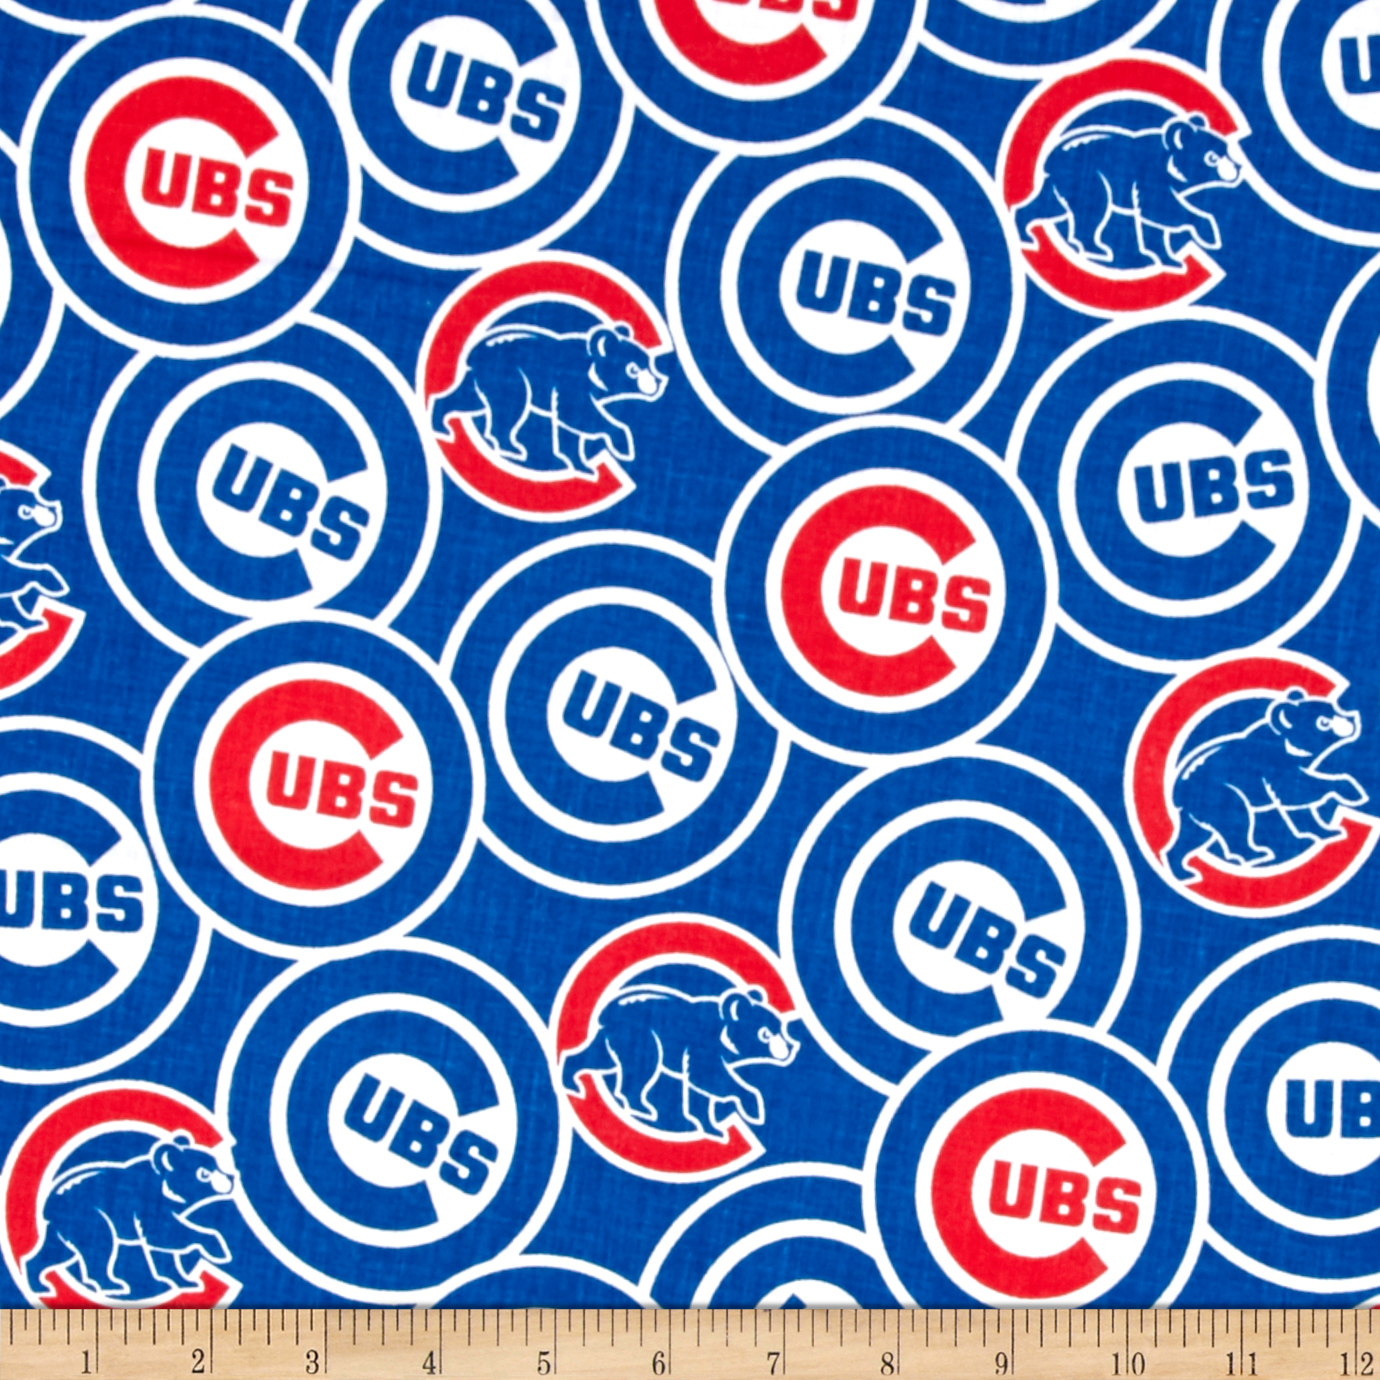 Chicago Cubs Cotton Broadcloth Blue Fabric by Fabric Traditions in USA